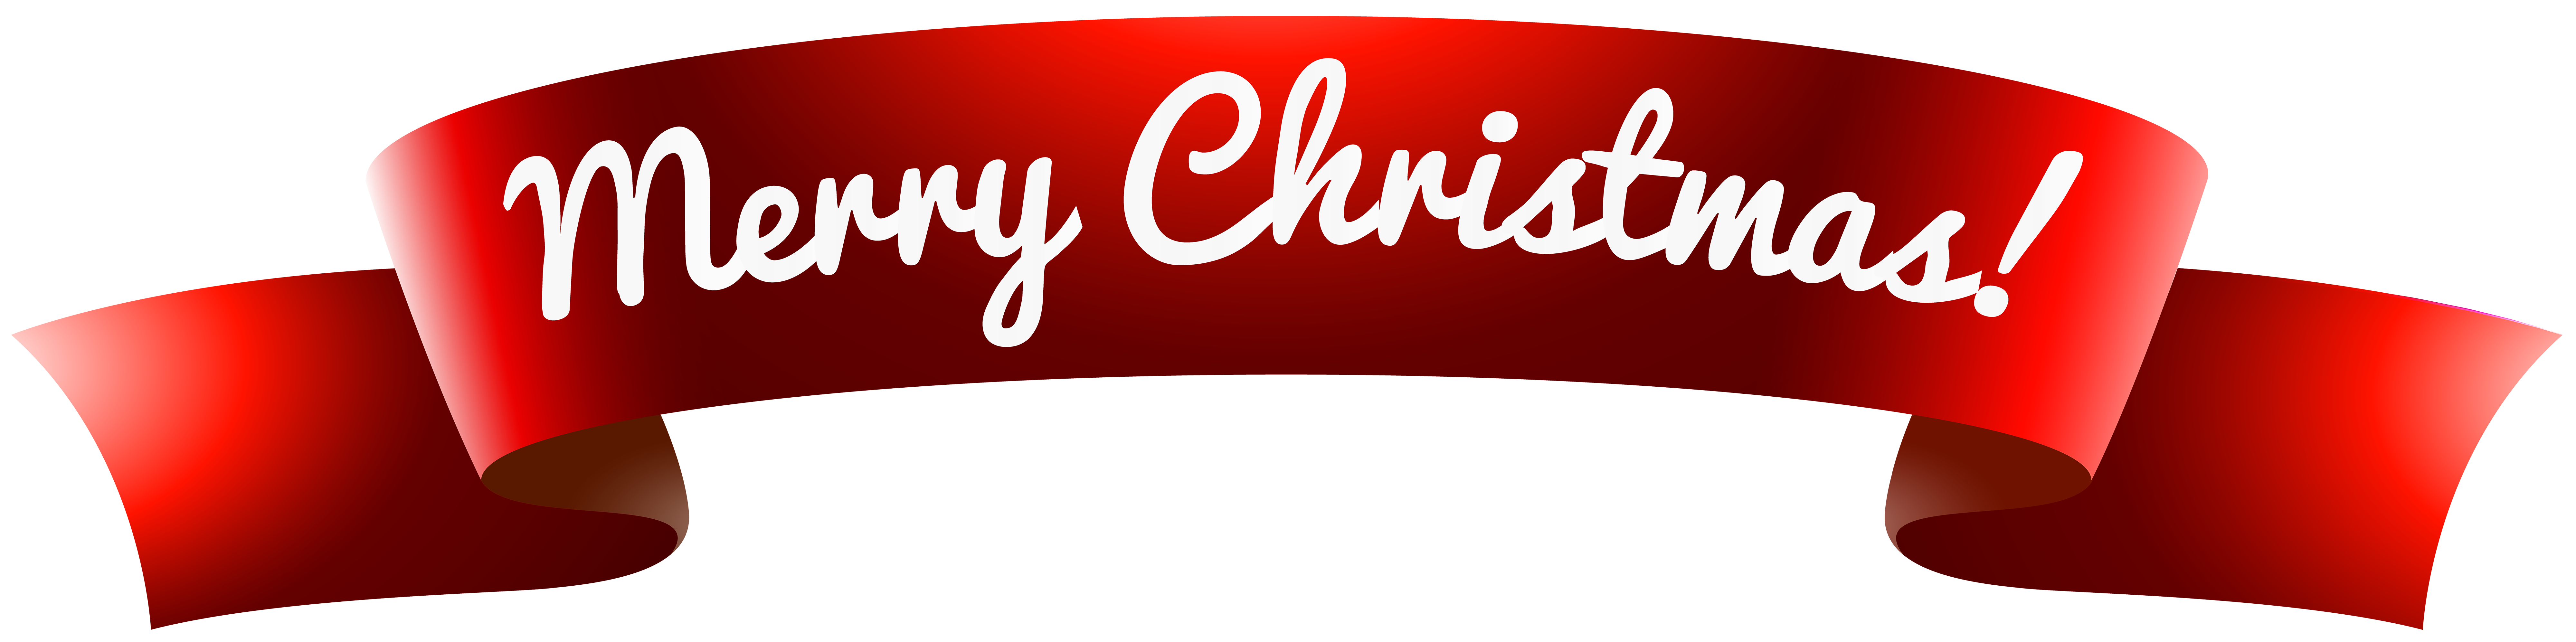 Christmas banners clipart clip art free library Banner Merry Christmas PNG Clip Art Image   Gallery Yopriceville ... clip art free library